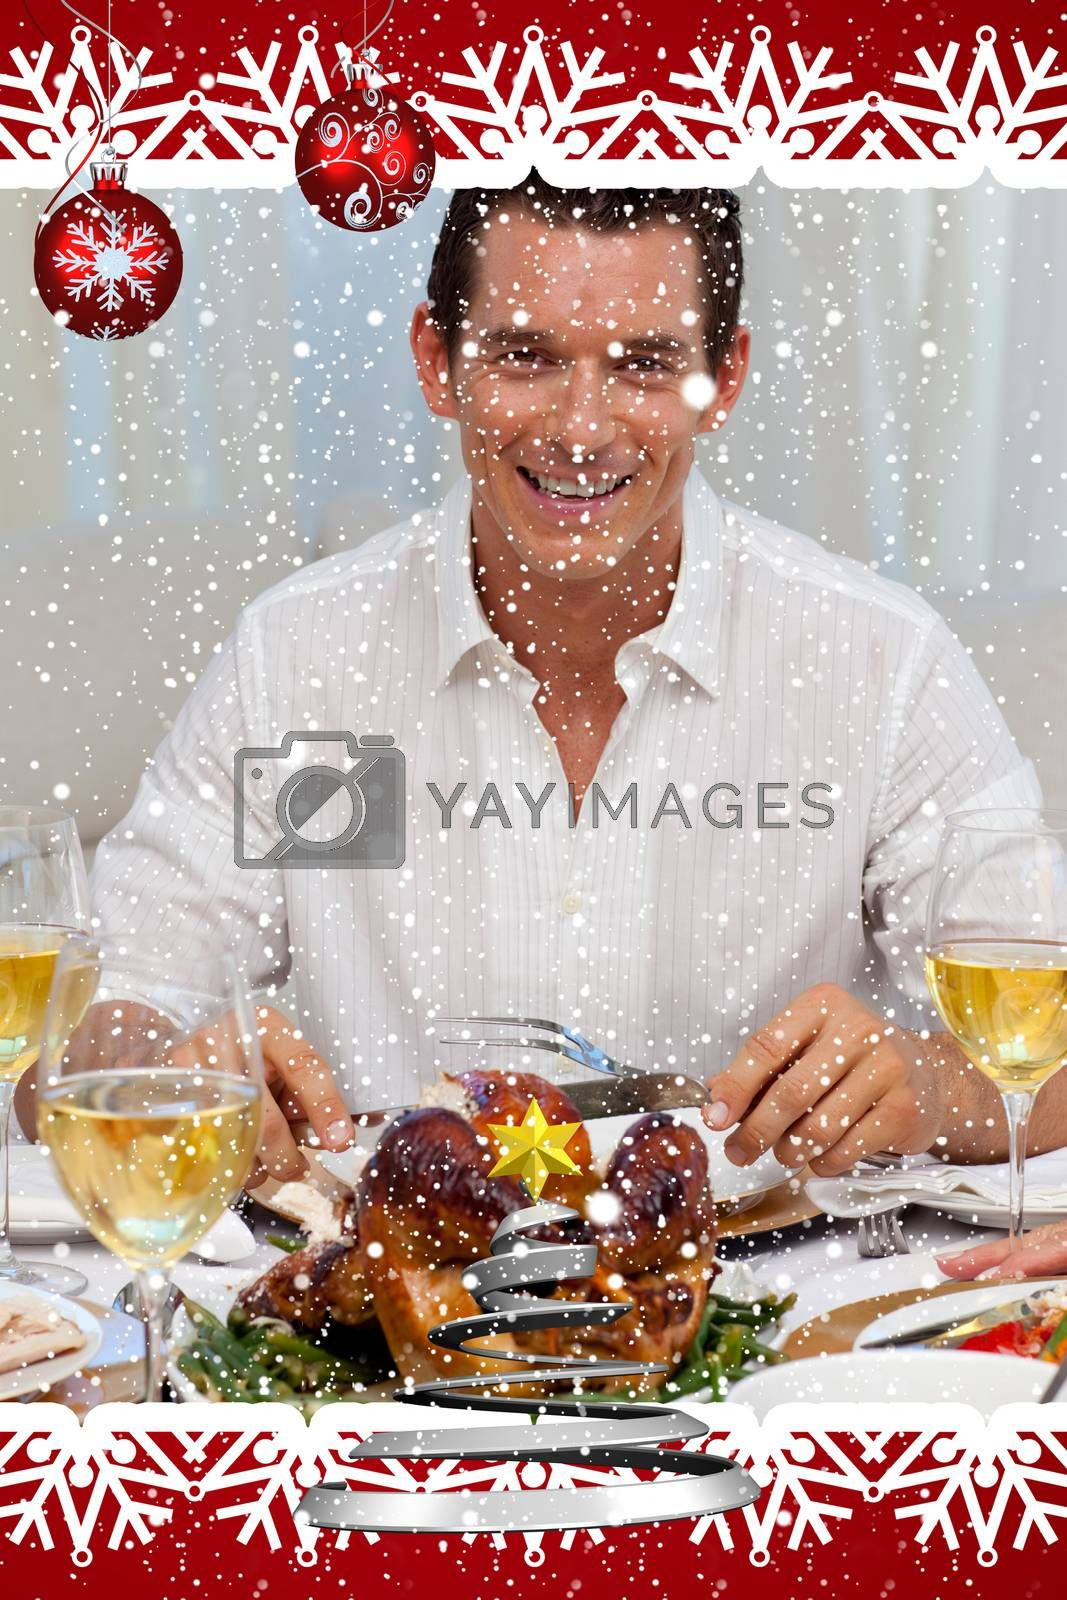 Smiling man eating turkey in Christmas dinner against snow falling